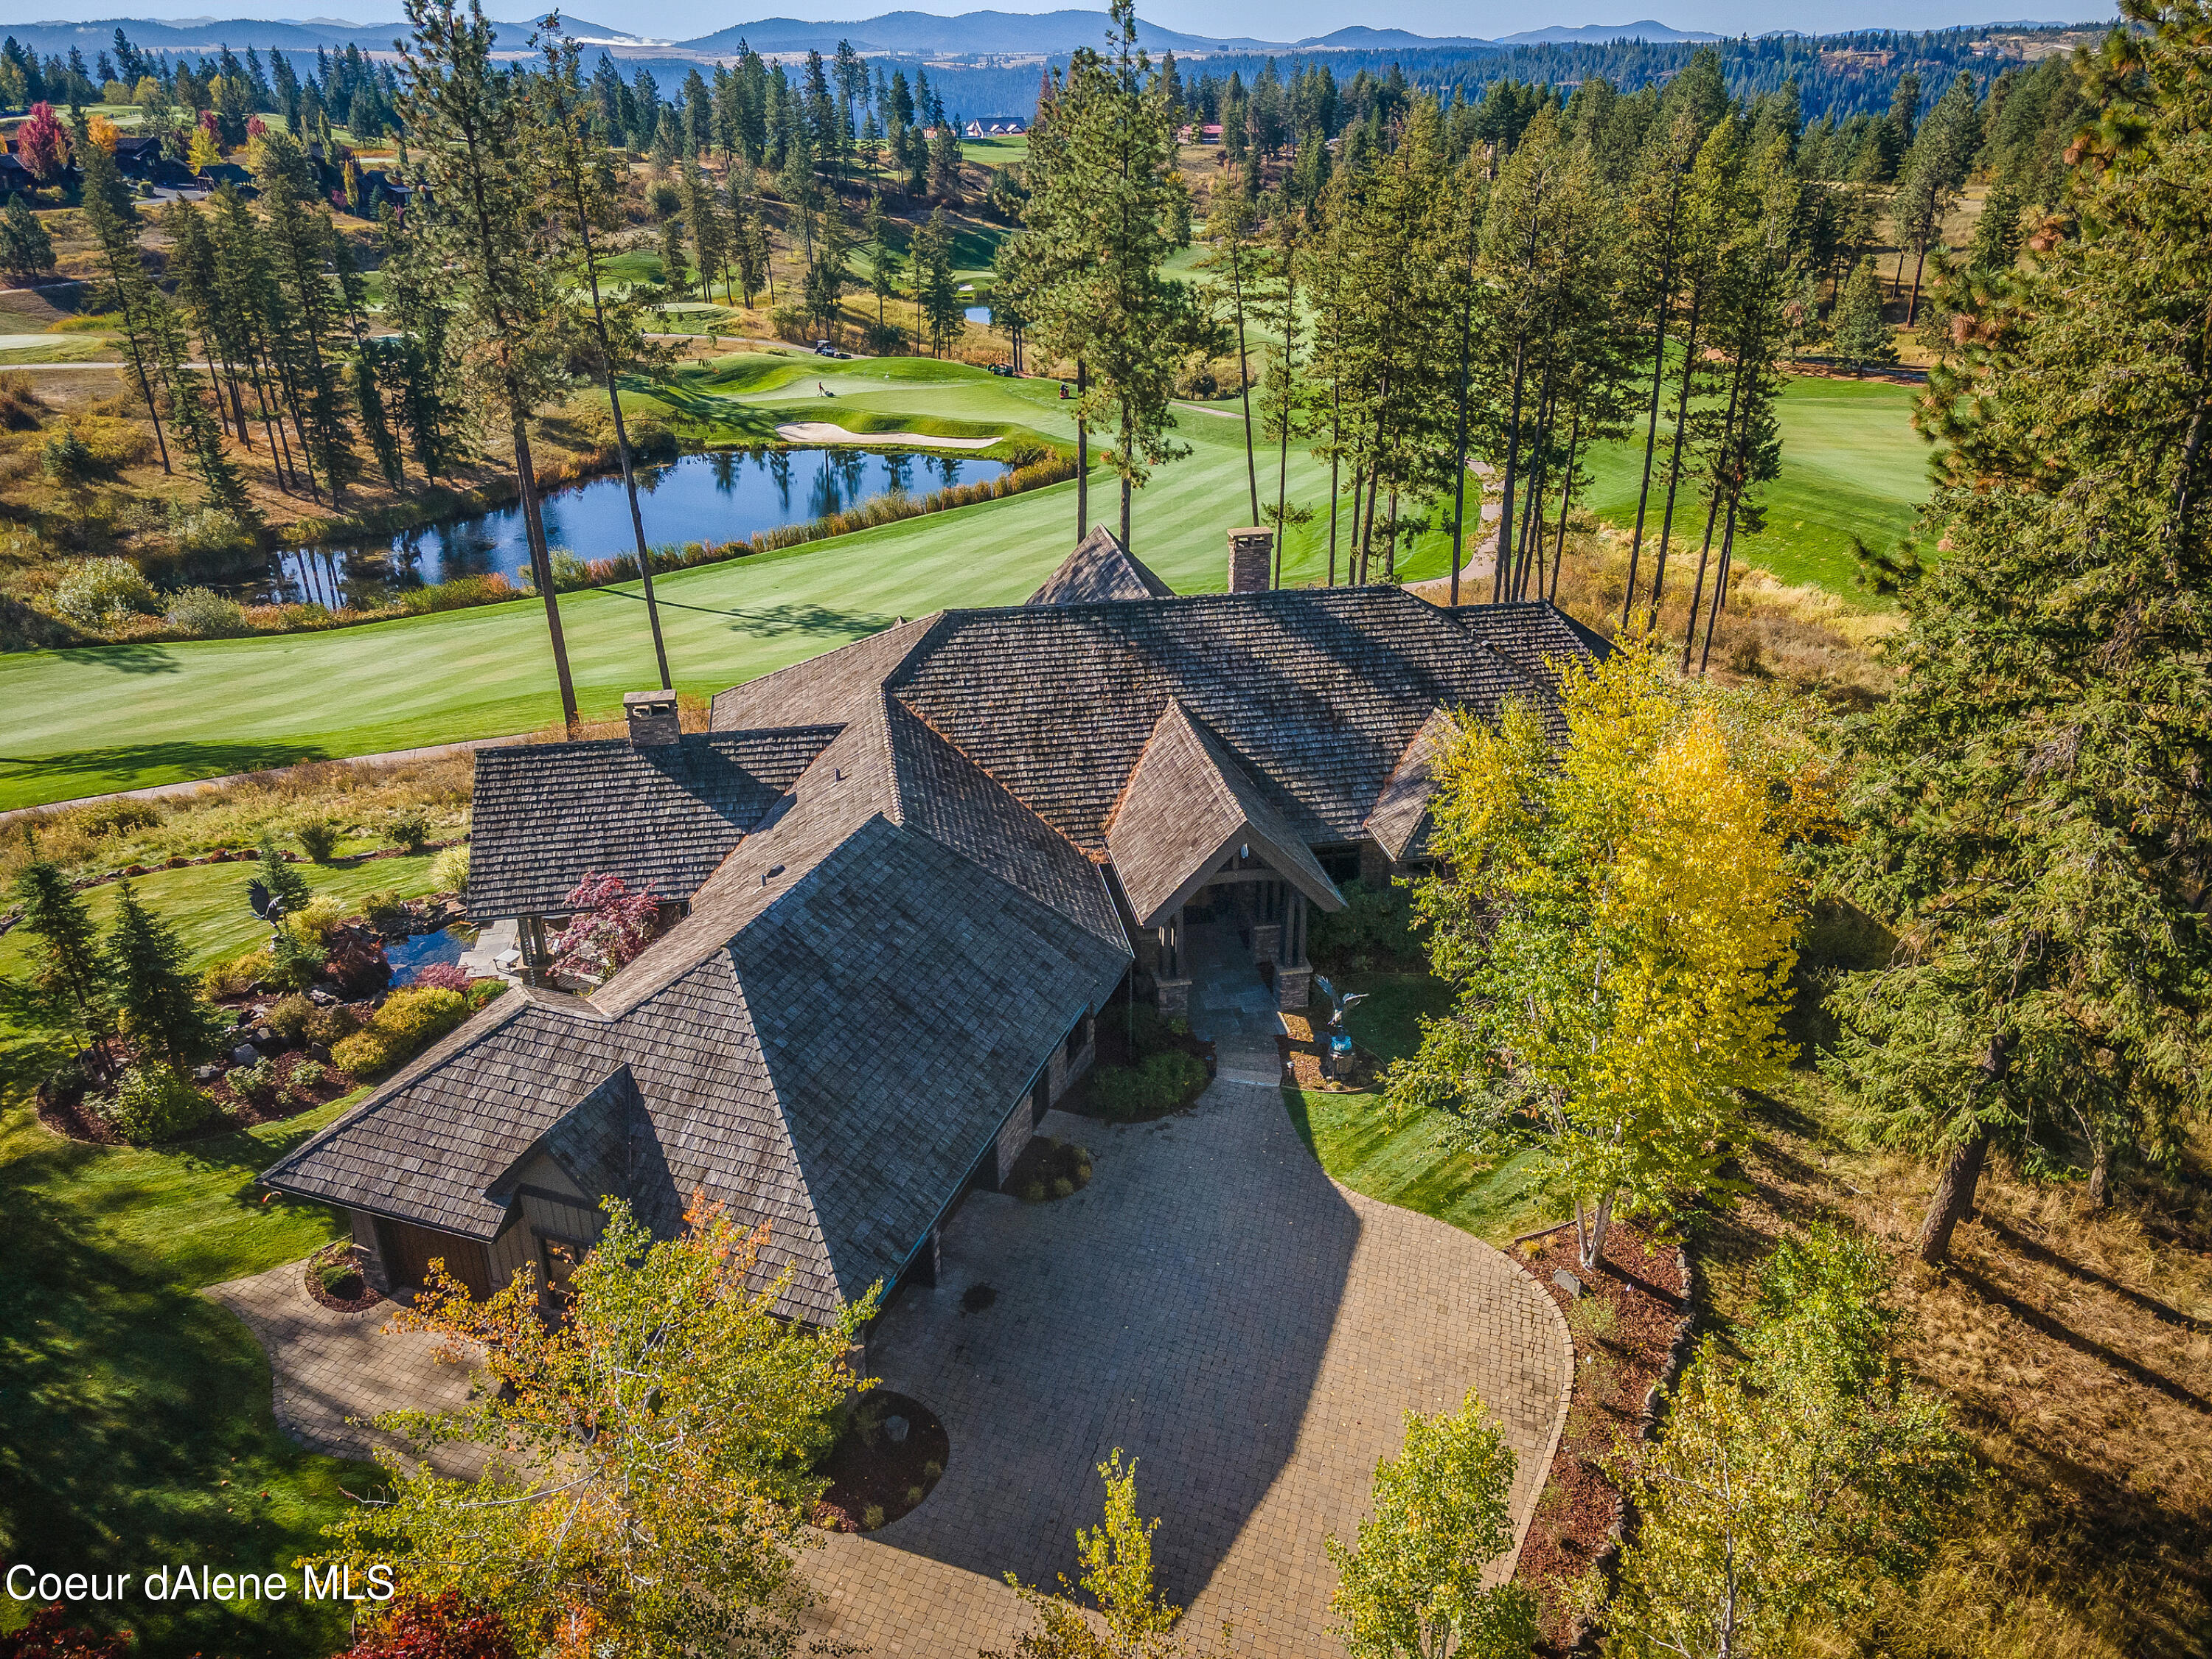 16885 S SPINEL CT, Coeur d'Alene, ID 83814